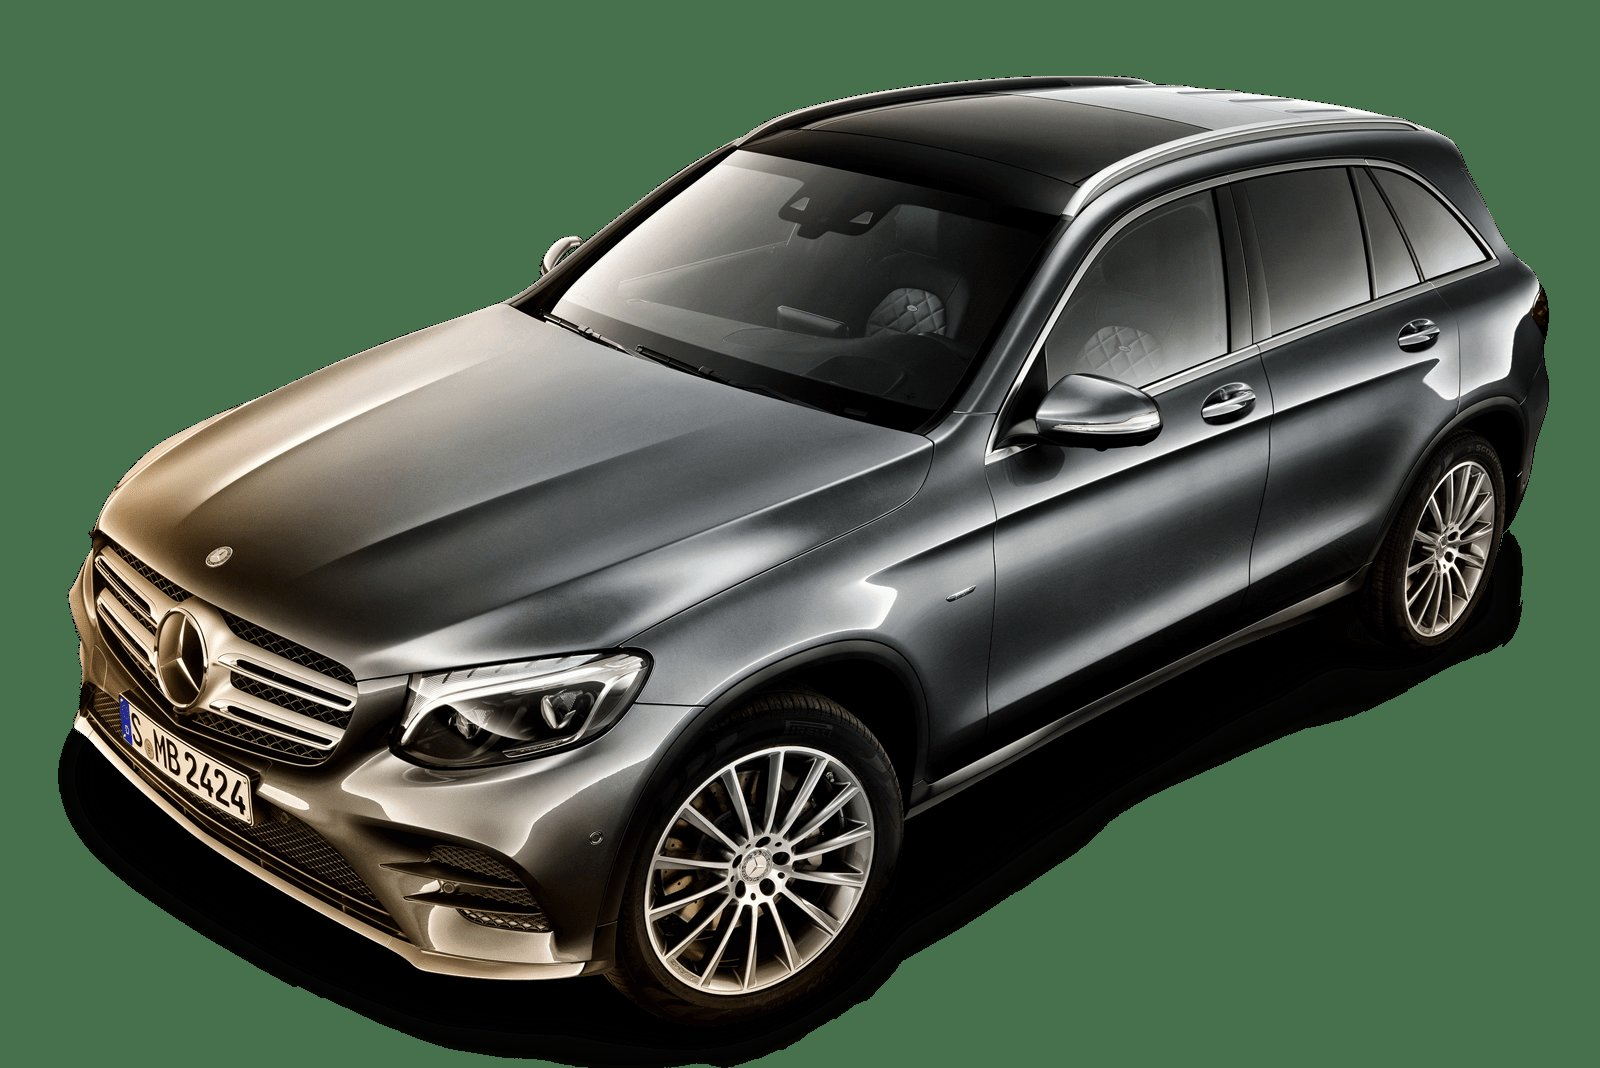 Latest Mercedes Benz Glc Gray Car Png Image Pngpix Free Download